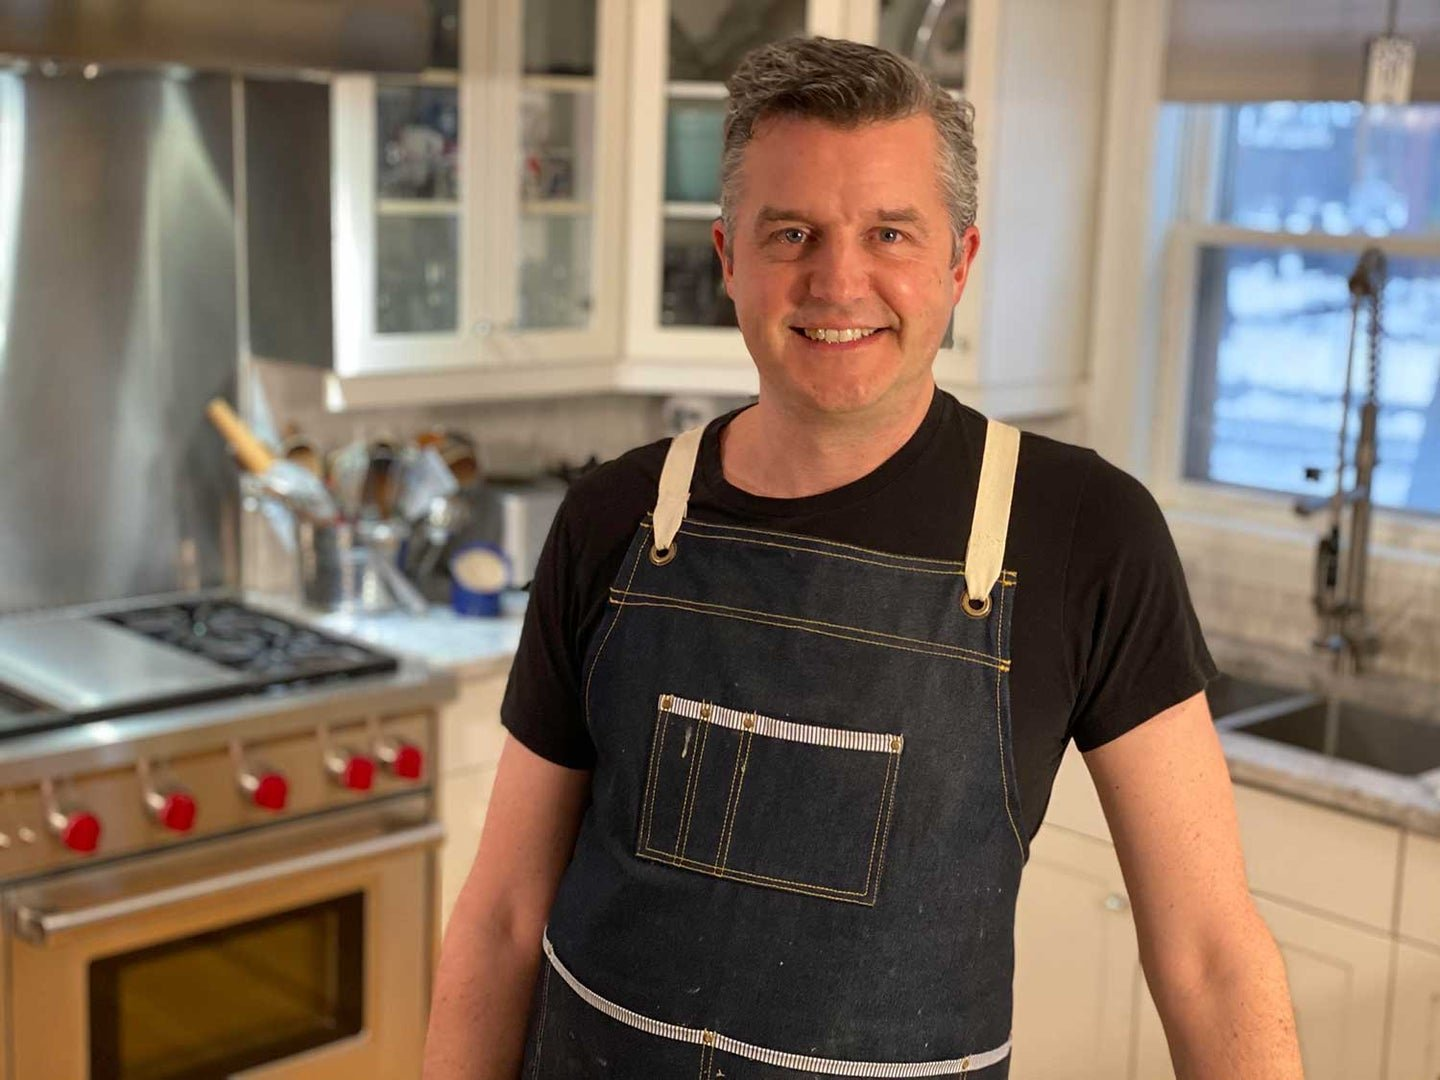 This reader cooked over 4,000 recipes—here are 6 he makes again and again